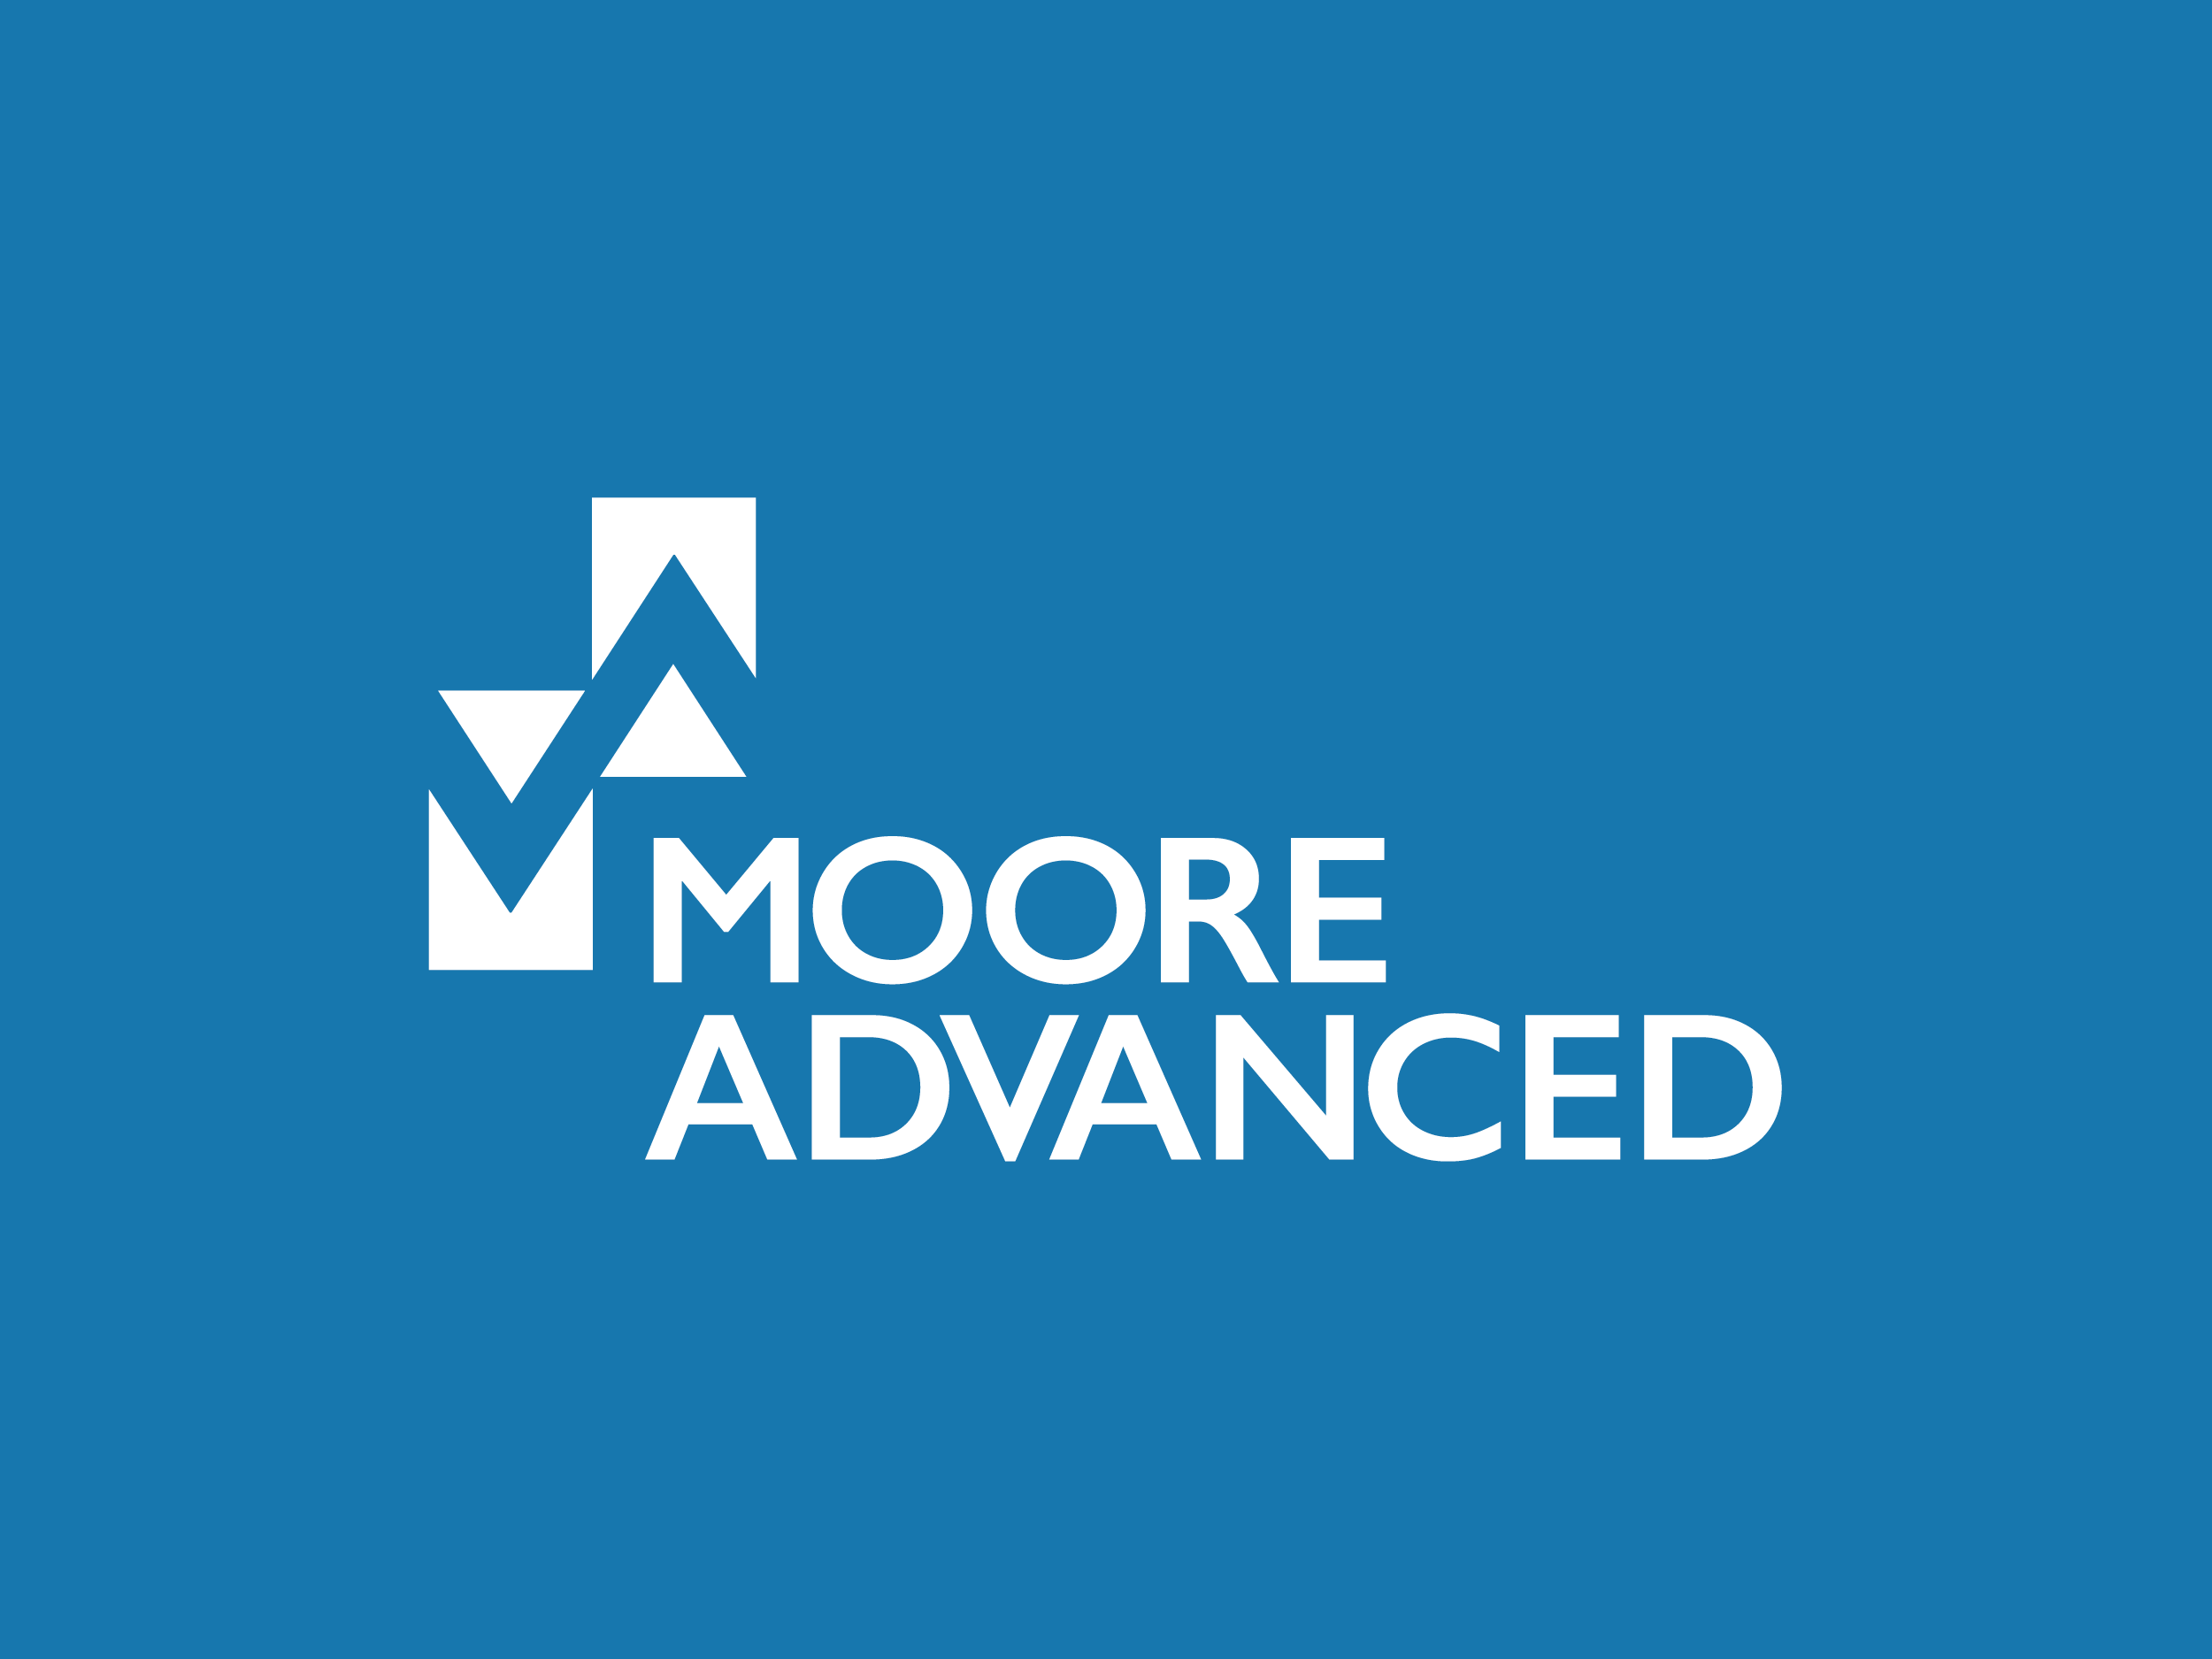 Moore Advanced.png